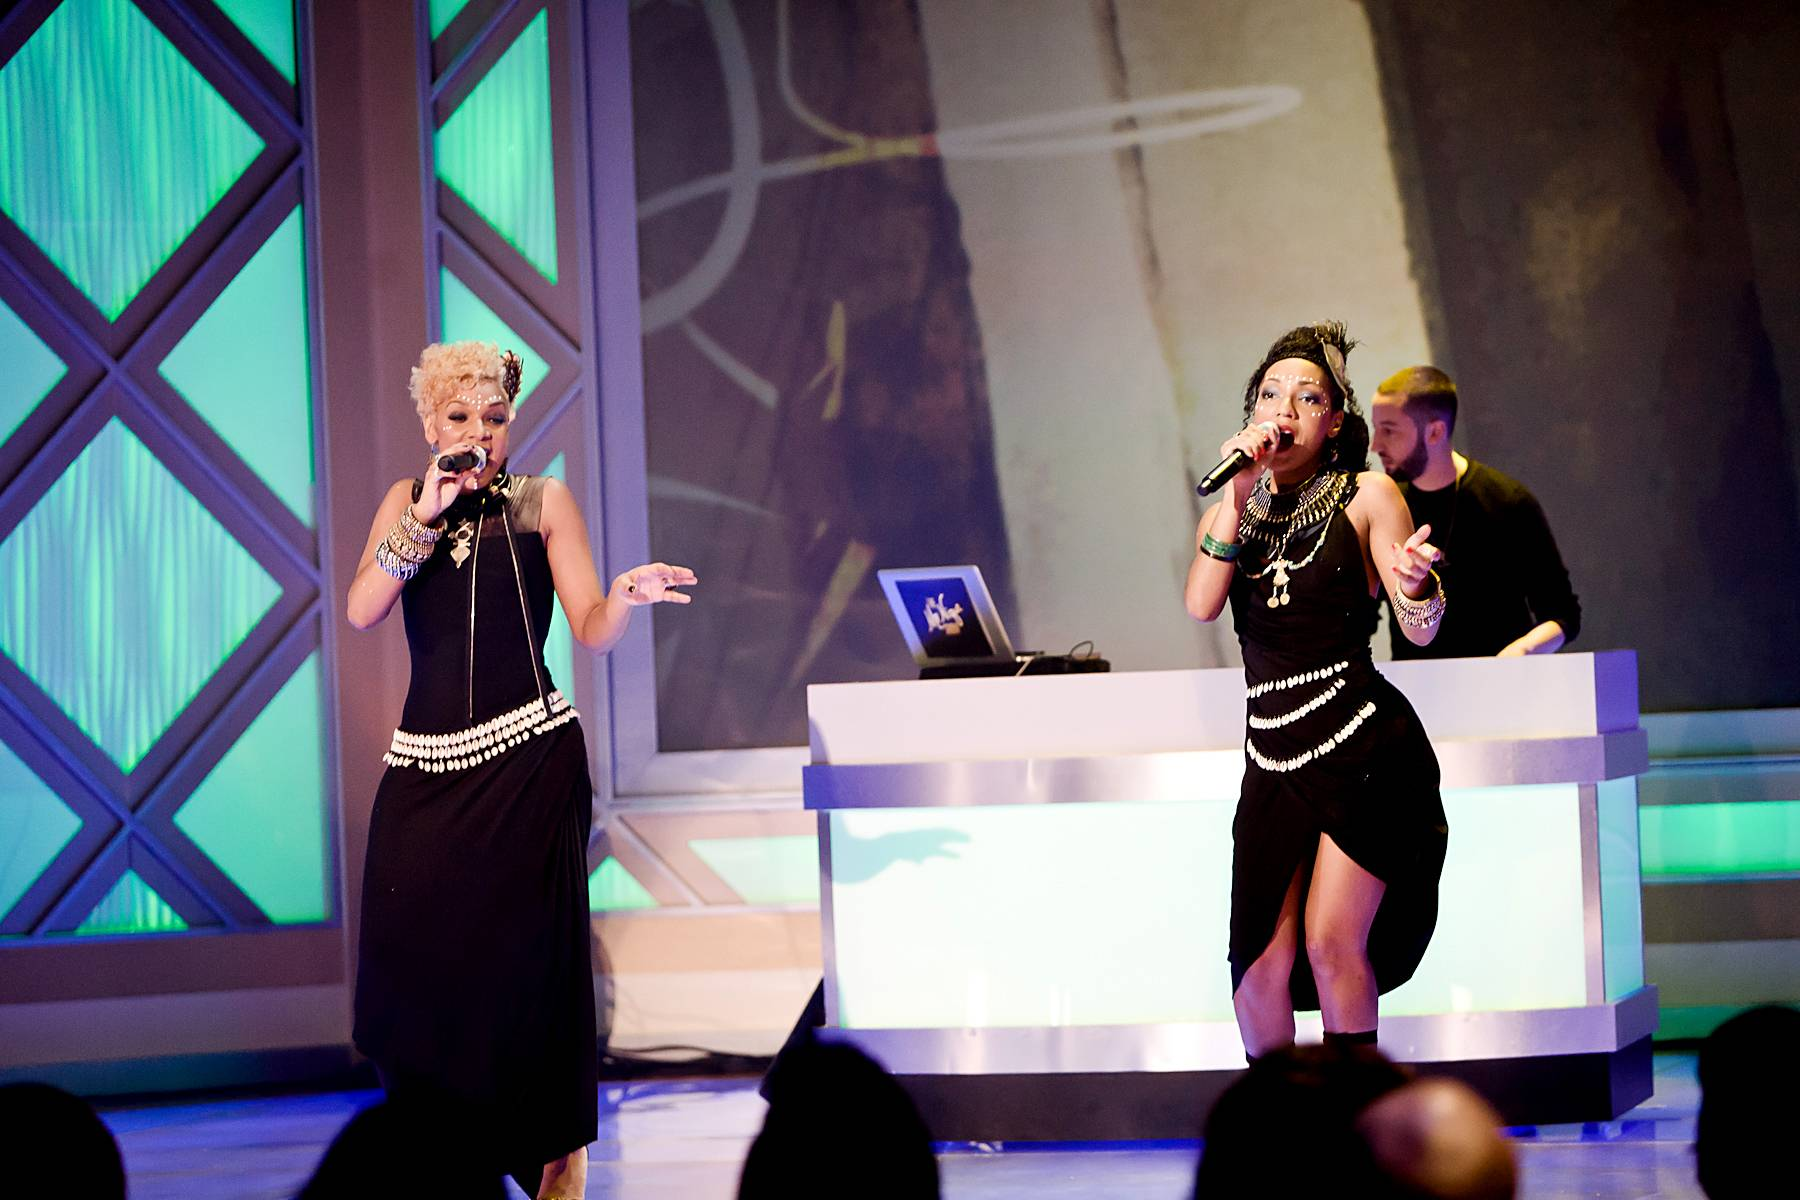 """Makeda Applebum\r - Before the night was through the Les Nubians made sure to take it back and perform their late '90s hit """"Makeda.""""\r\r\r(Photo: Darnell Williams/BET)"""